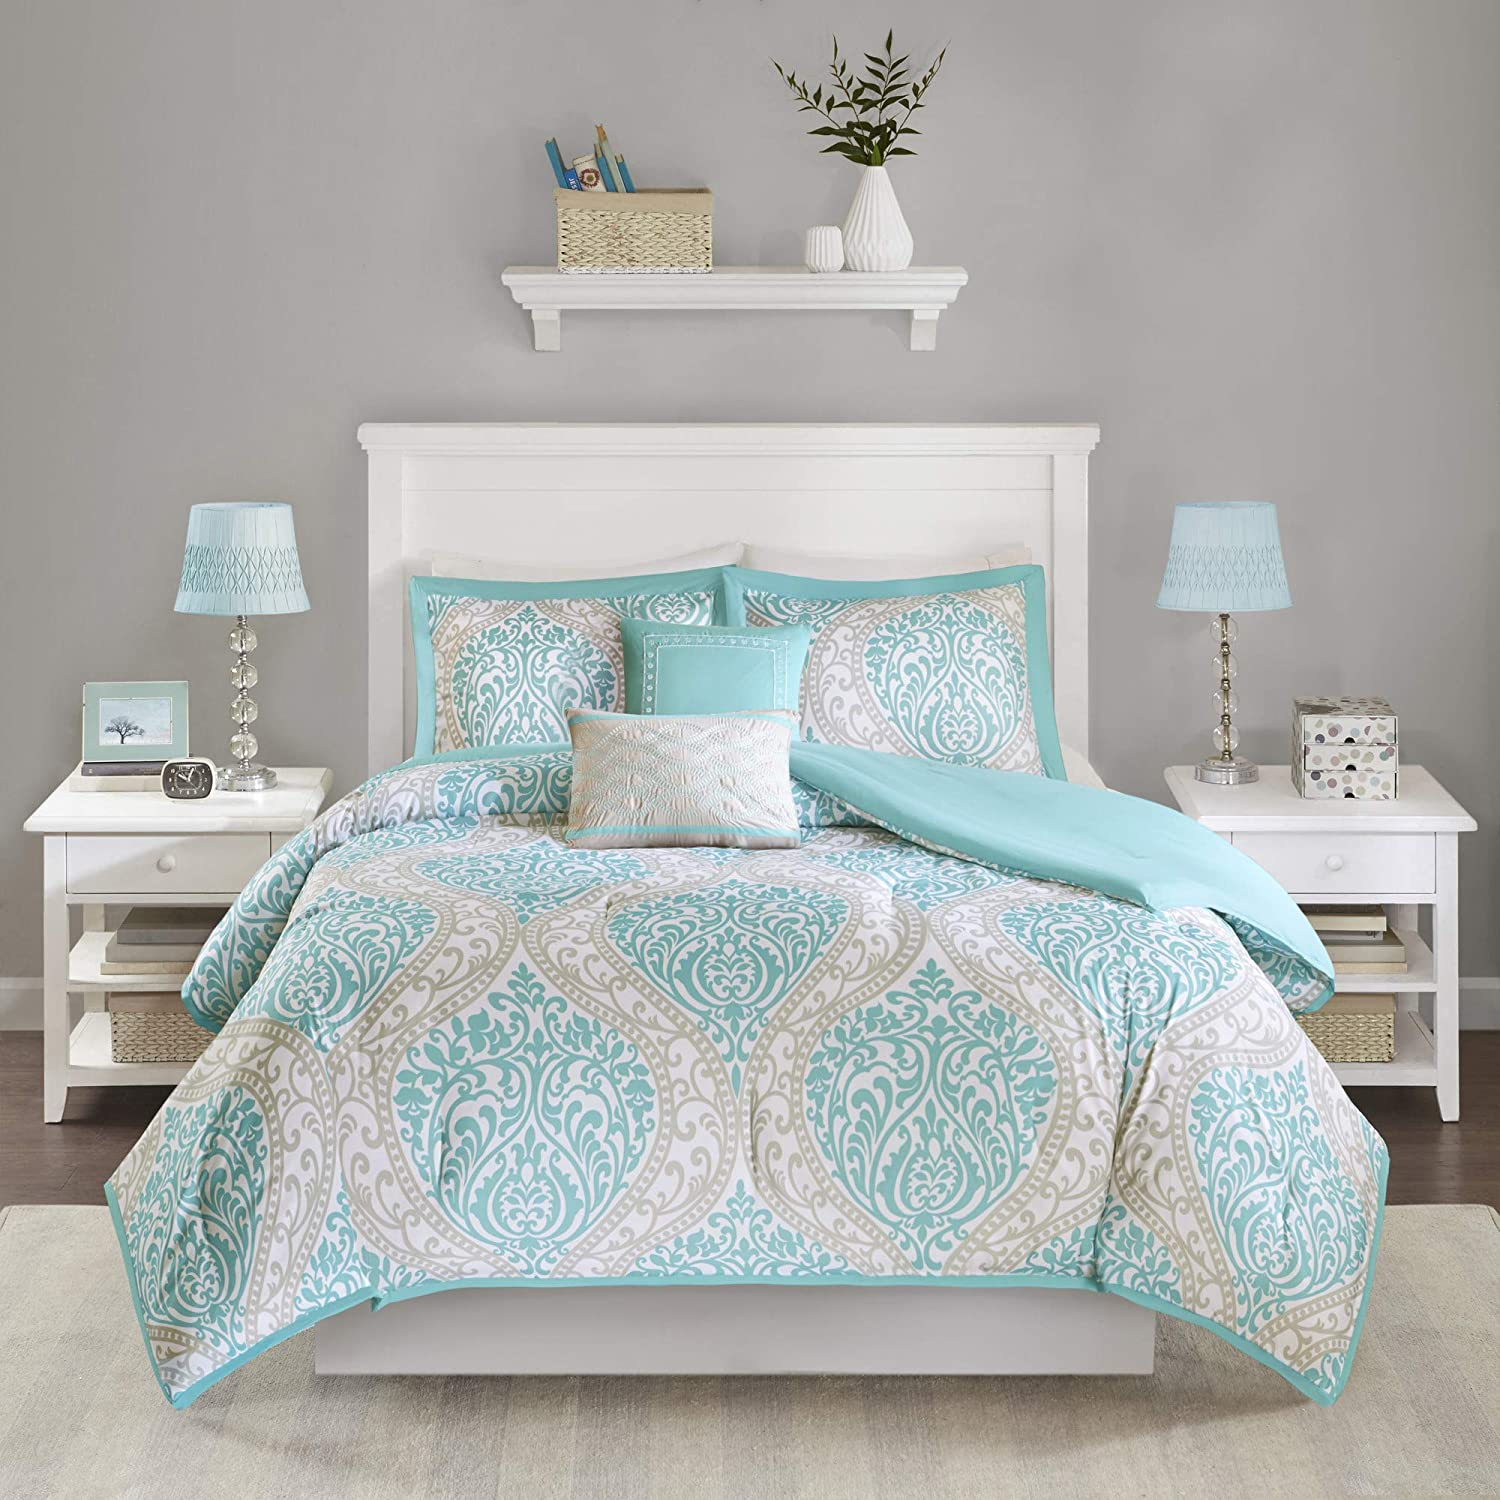 Home Essence Apartment 5 Pc Full/Queen Chelsea Ultra Soft Bedding Comforter Set in Aqua - Damask Print, Two Dec Pillows with Embroidery and Fabric Manipulation